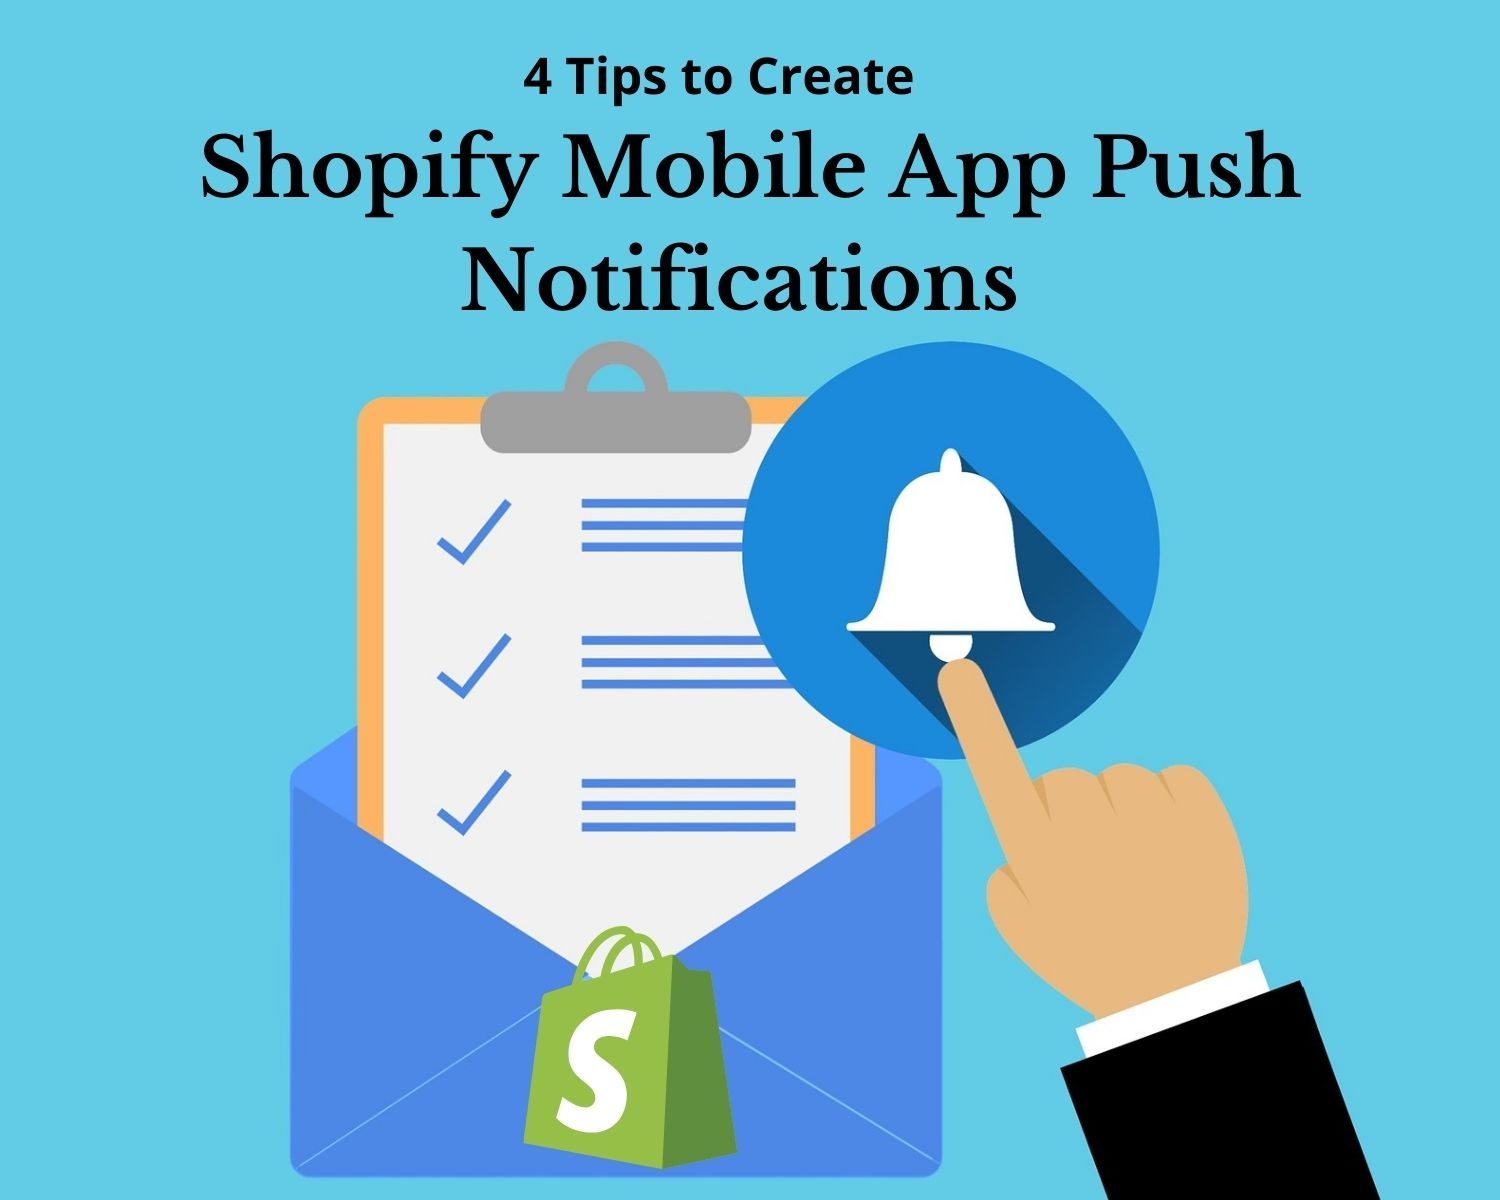 Shopify Mobile App Push Notifications